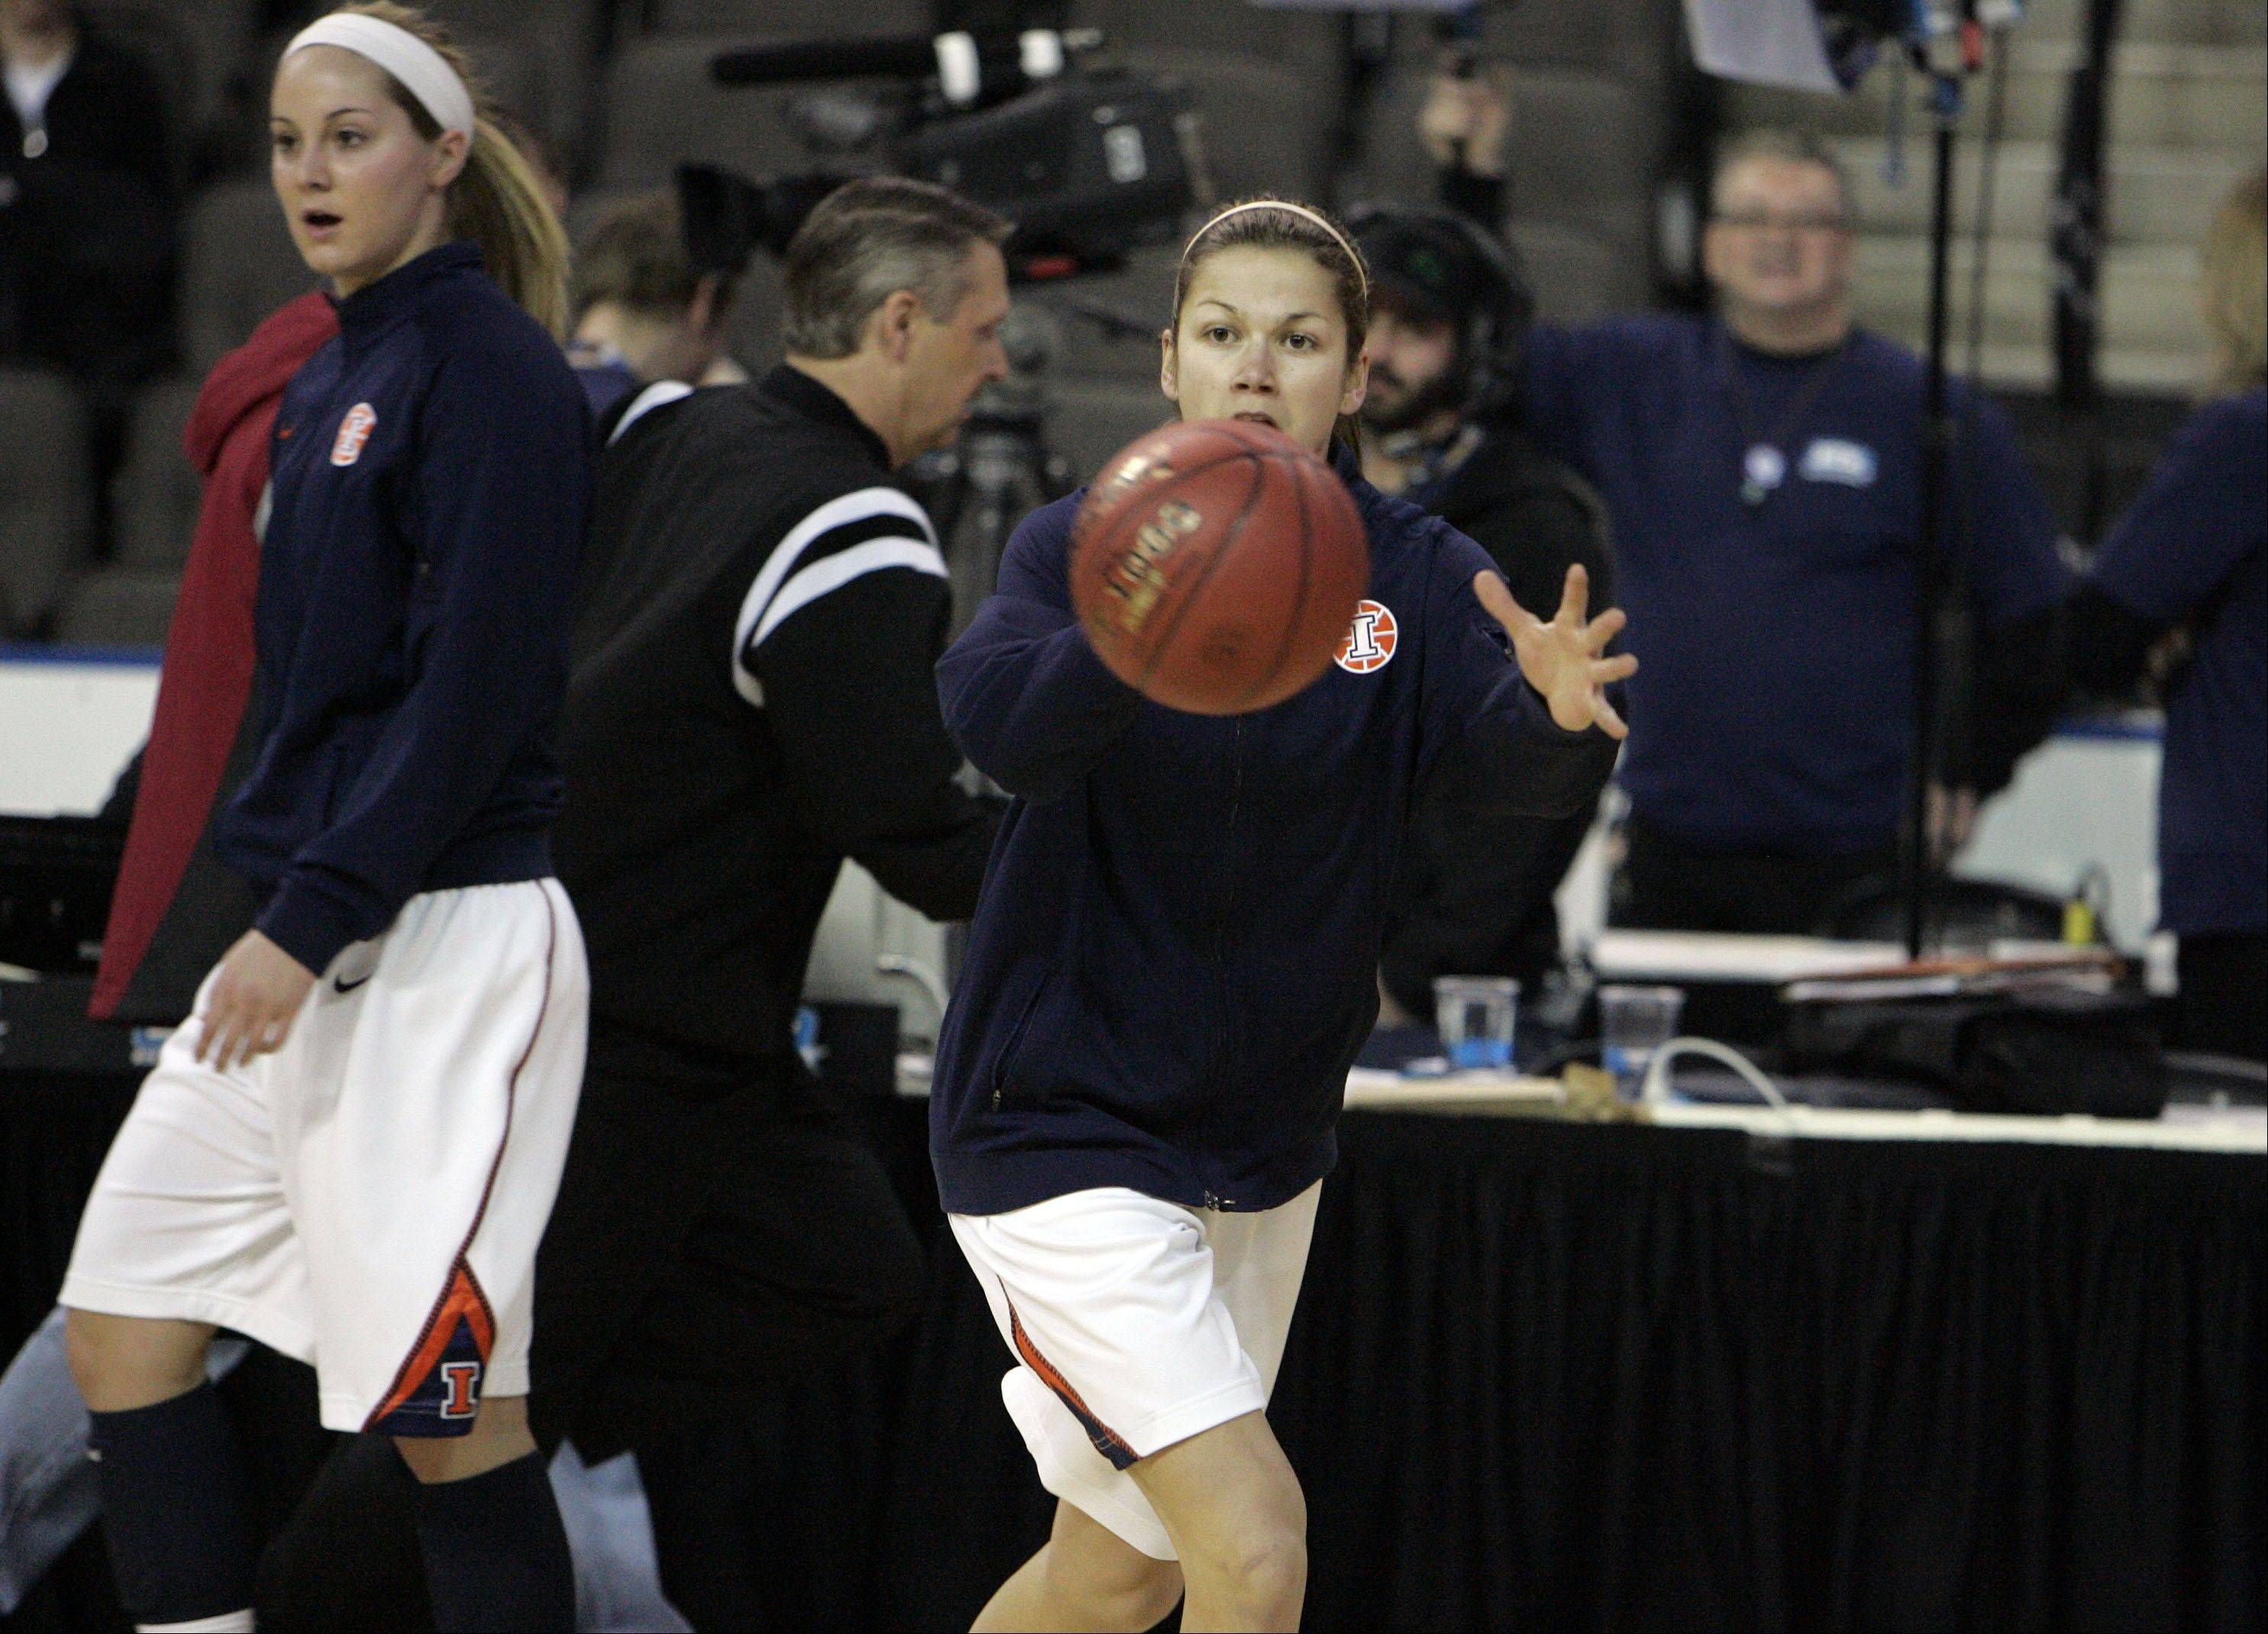 Hampshire and ECC graduate Cassie Dumoulin, who played at Illinois this season, passes the ball in warm-ups prior to the Illini's loss to Wisconsin Thursday at the Big Ten women's basketball tournament at the Sears Centre in Hoffman Estates.